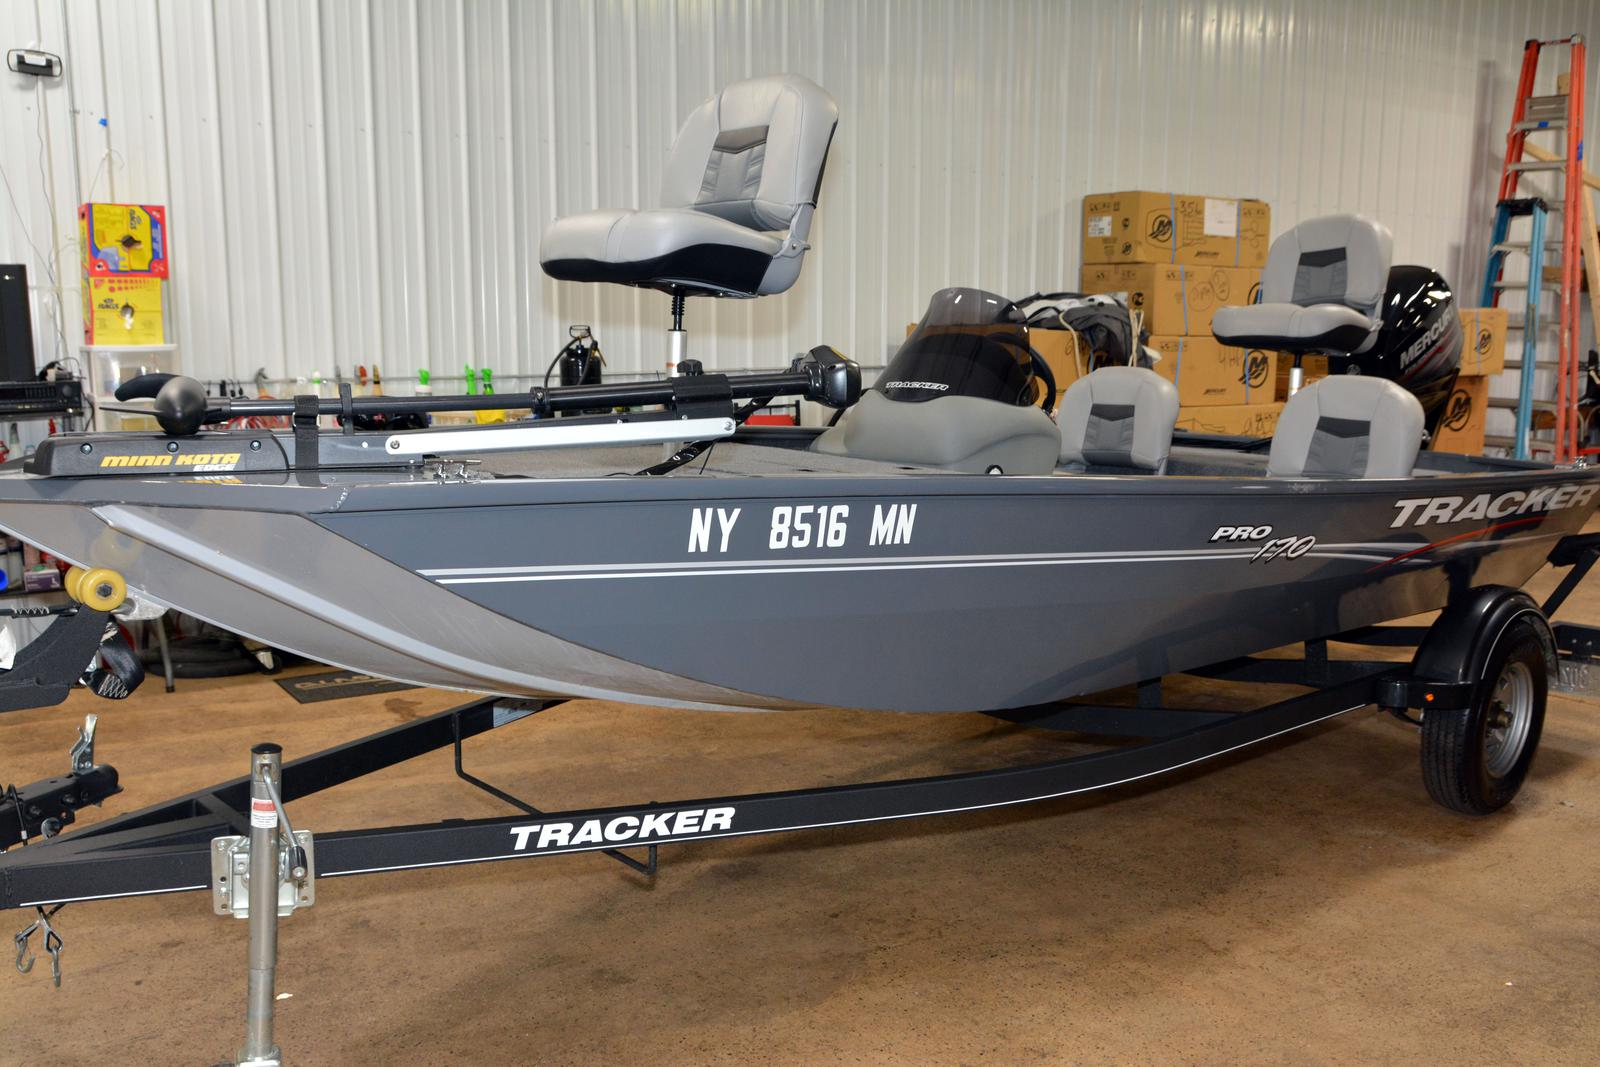 Used Tracker Boats For Sale In New York - Page 1 of 1   Boat